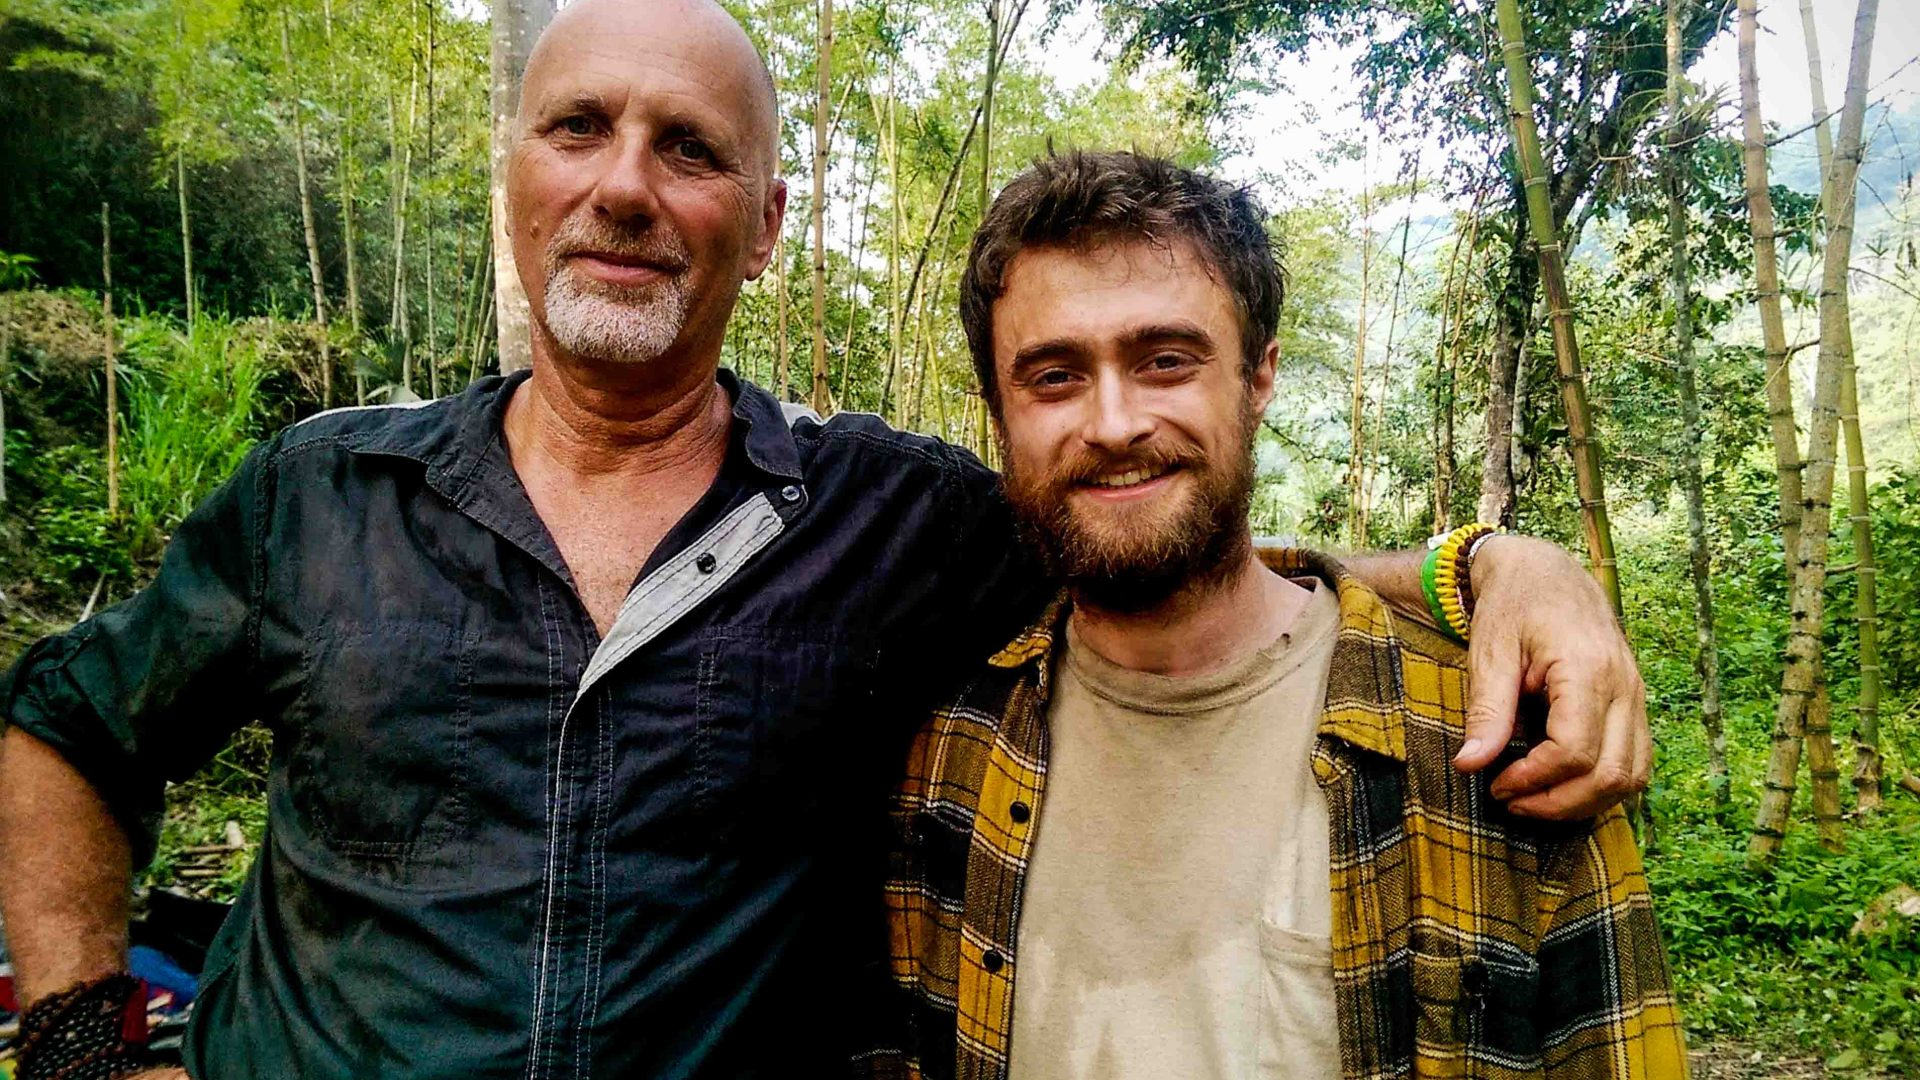 Yossi Ghinsberg with actor Daniel Radcliffe on the set of 'Jungle', the film about his experience being lost in the Bolivian Amazon.